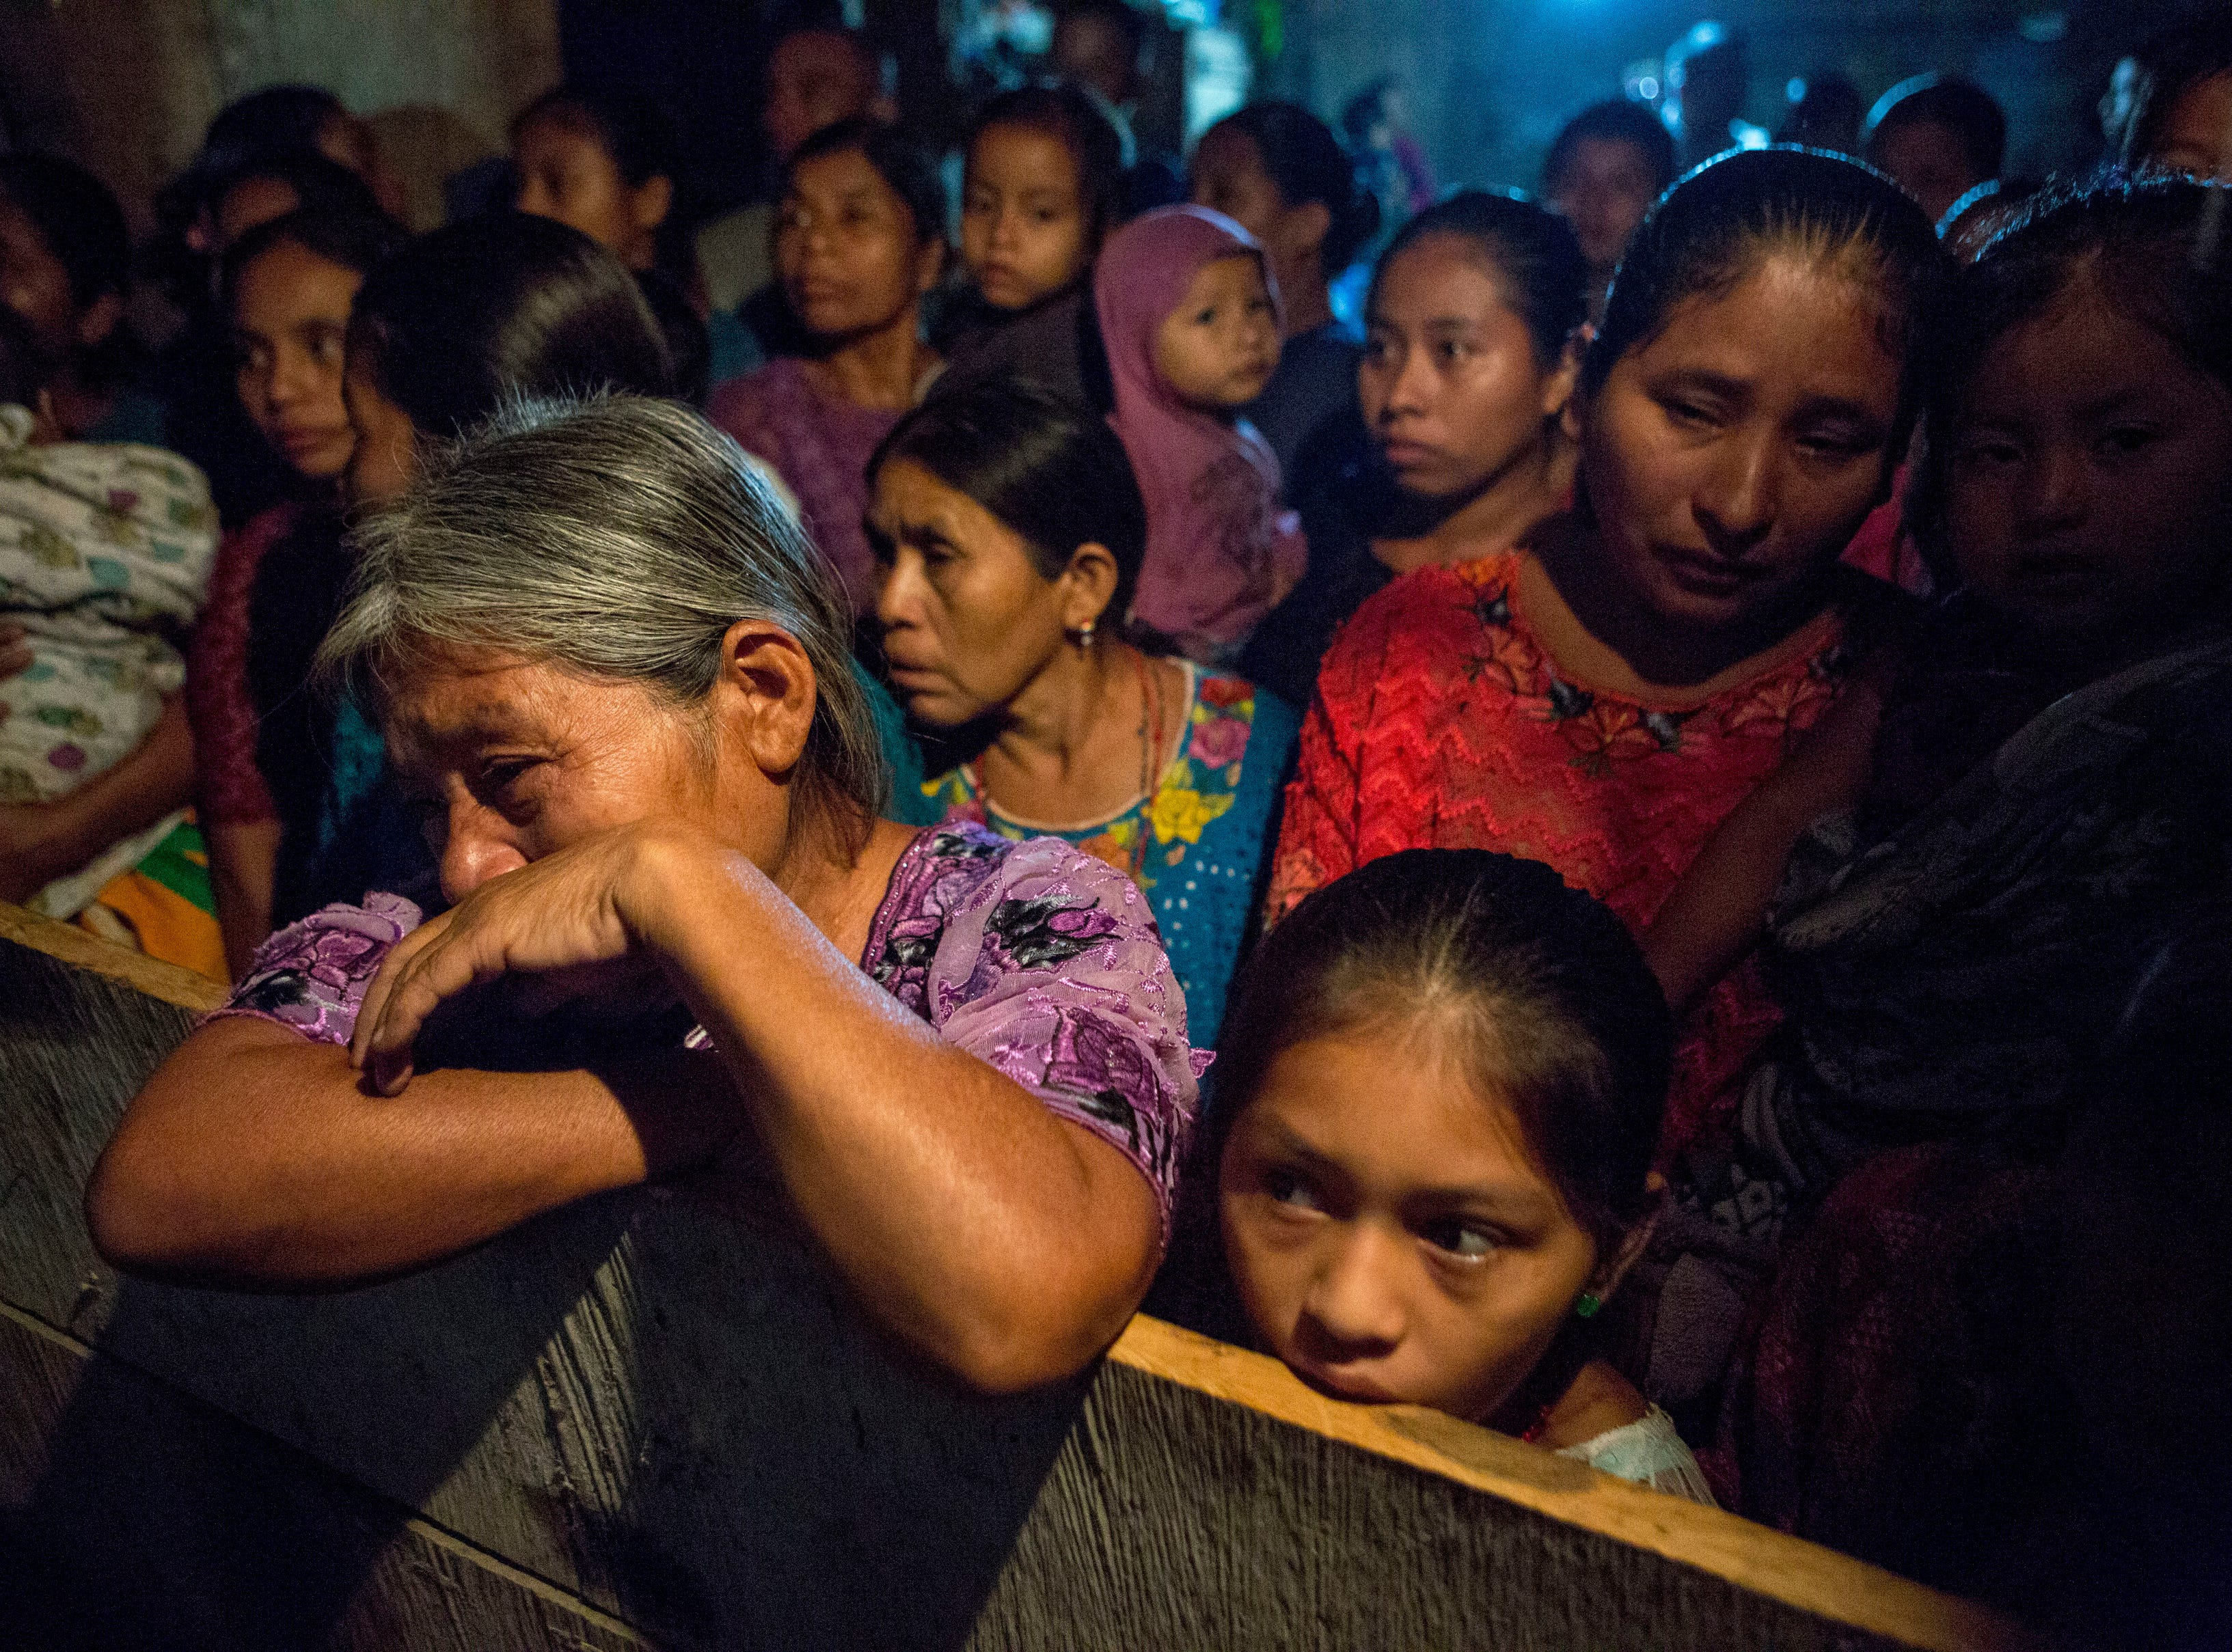 Elvira Choc grieves as she attends a memorial service for her 7-year-old granddaughter Jakelin Caal Maquin, in San Antonio Secortez, Guatemala, Monday, Dec. 24, 2018. The body of the 7-year-old girl who died while in the custody of the U.S. Border Patrol was handed over to family members in her native Guatemala on Monday for a last goodbye.